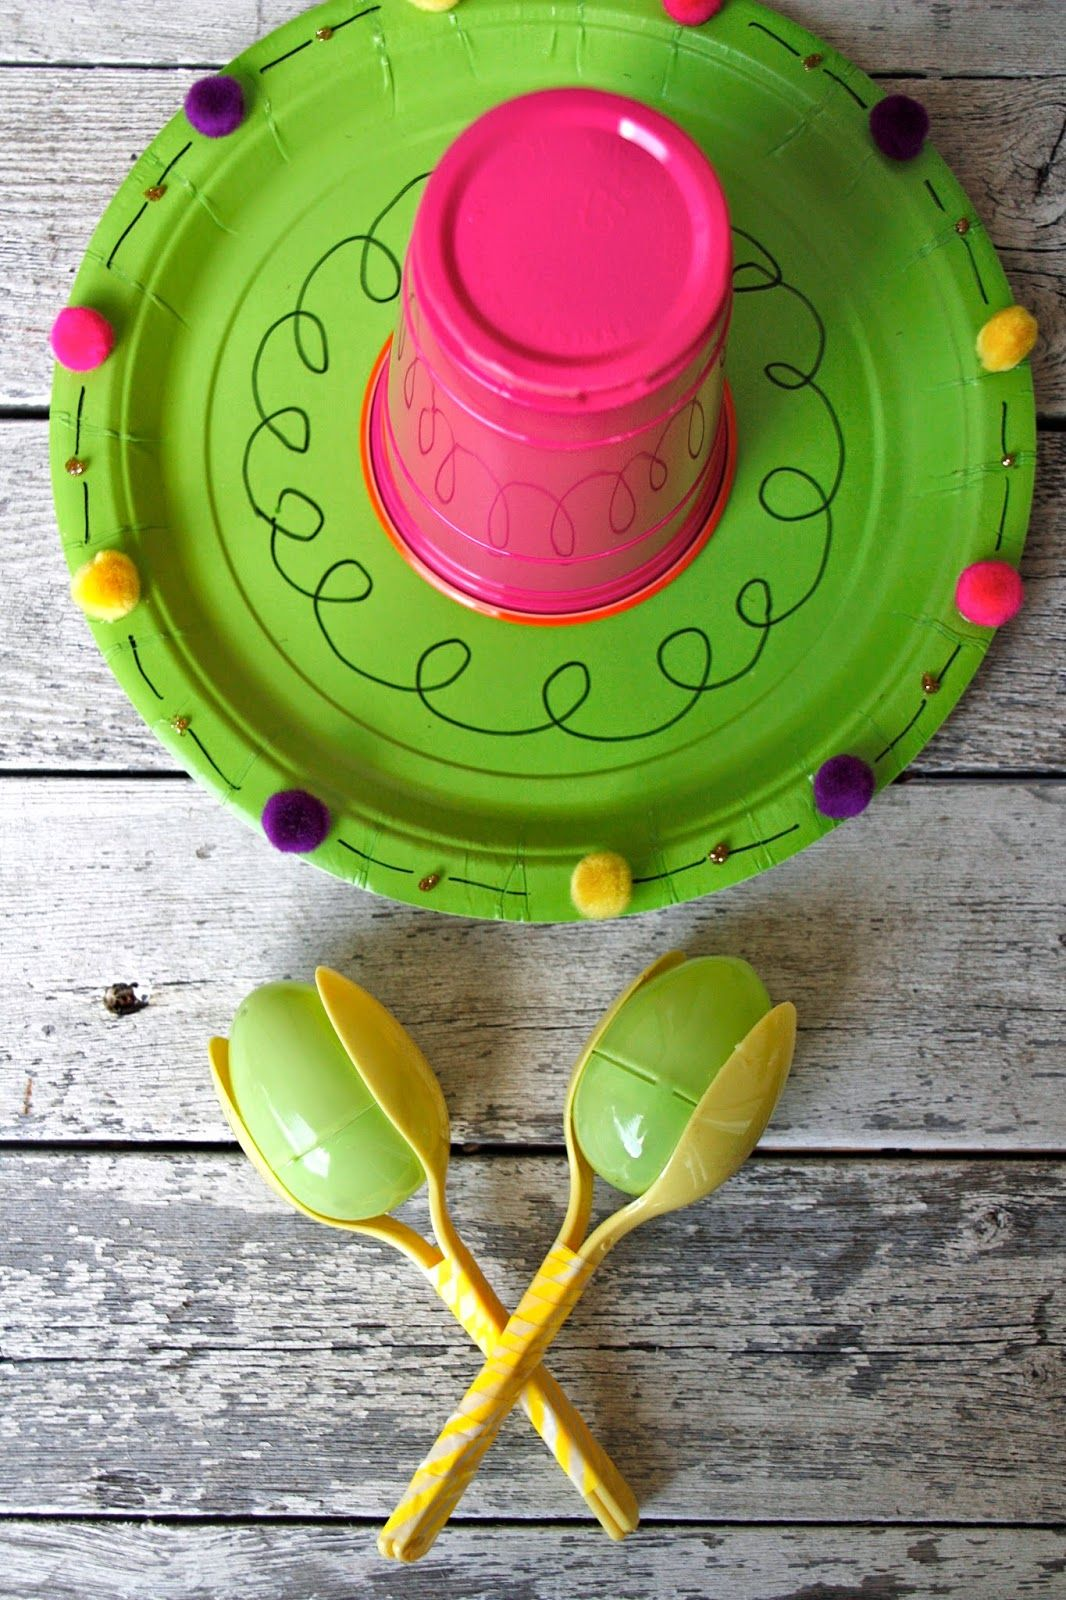 Paper Plate Sombrero And Easter Egg Maracas For Cinco De Mayo Super Easy Craft For The Kids